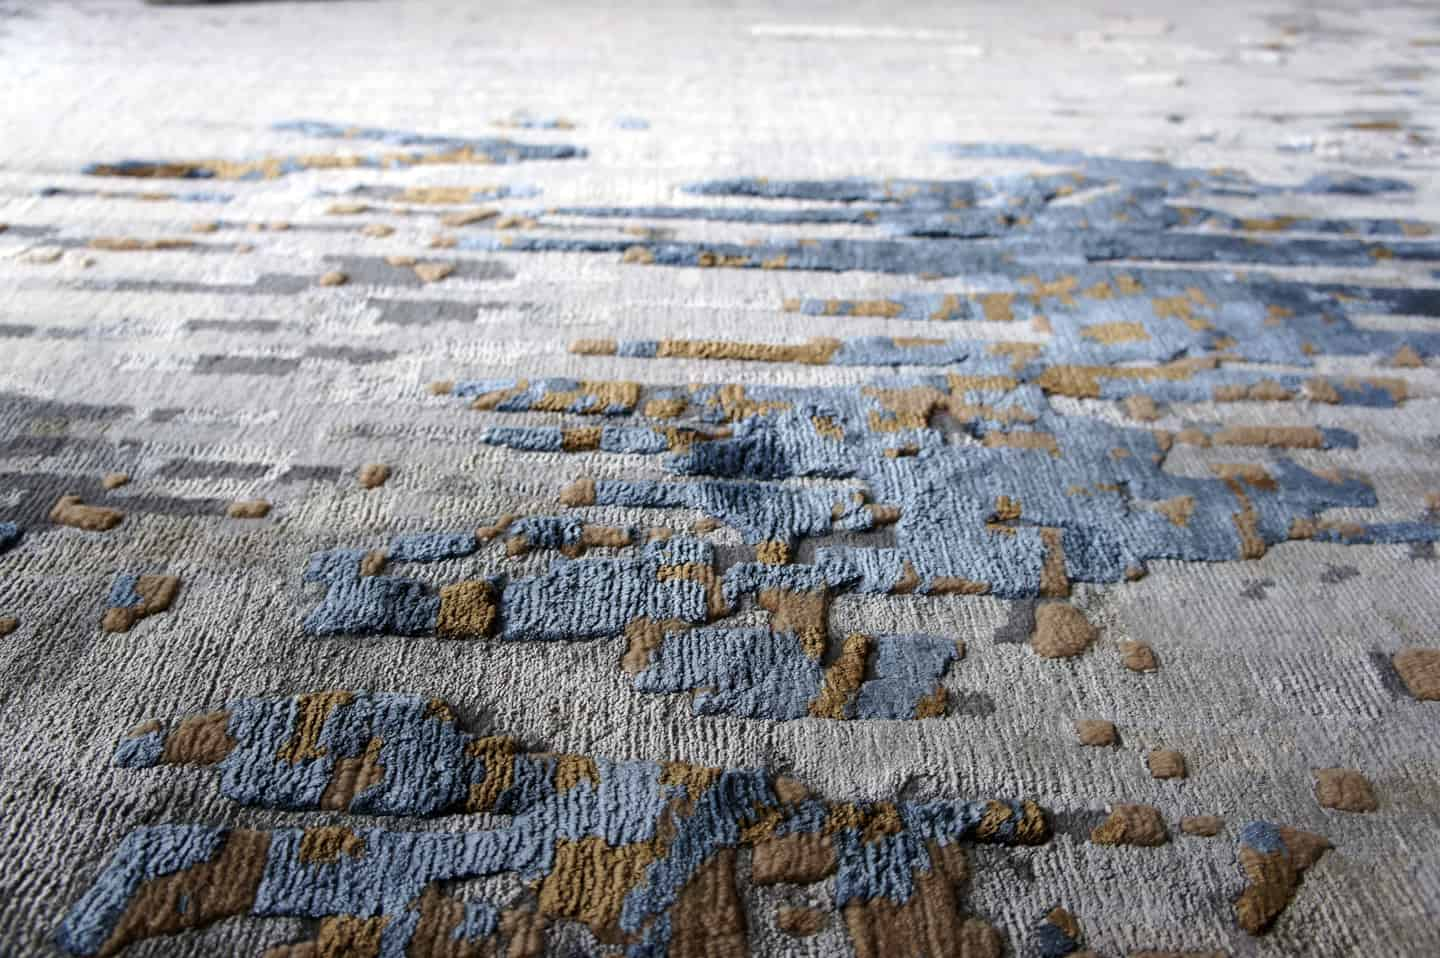 makers of fine custom hand knotted rugs. rug art.